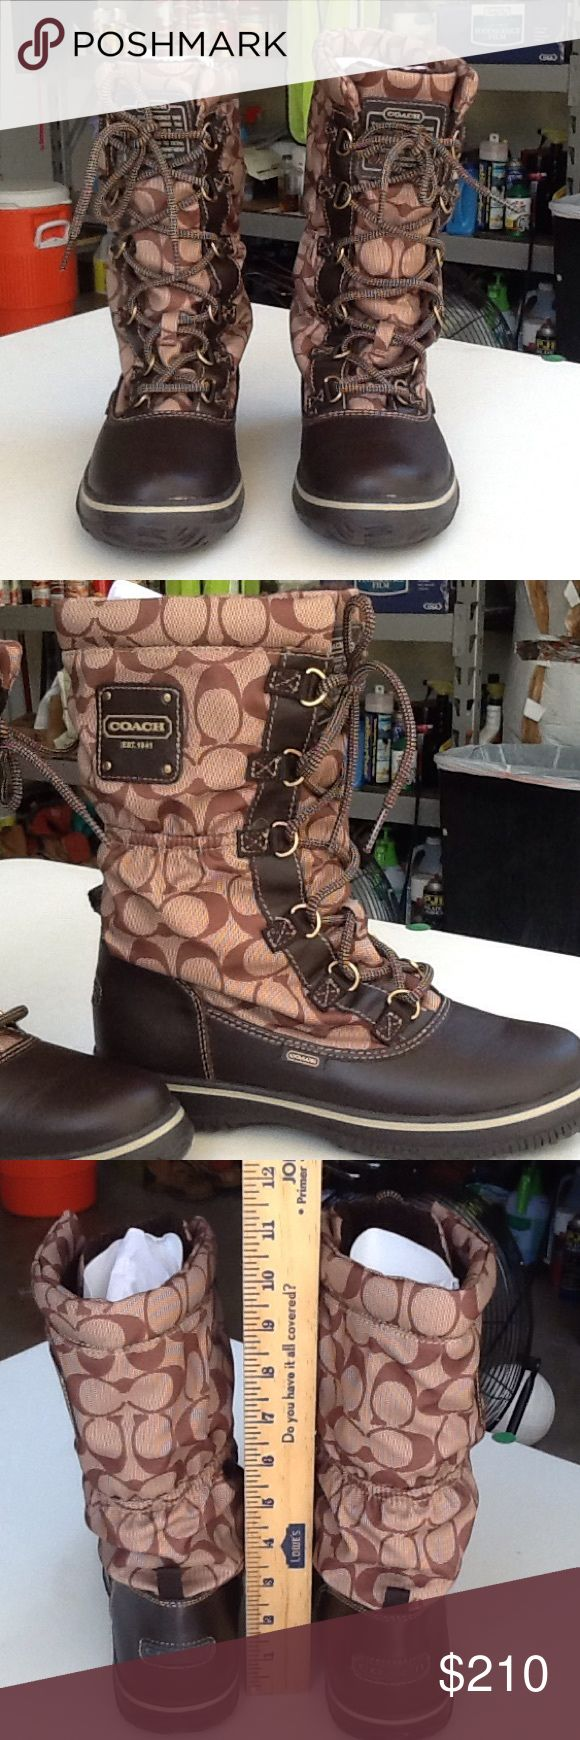 Coach boots Authentic Coach boot, calf height.  Boots are 10 1/4 inches high.  Excellent condition worn twice. Coach Shoes Lace Up Boots